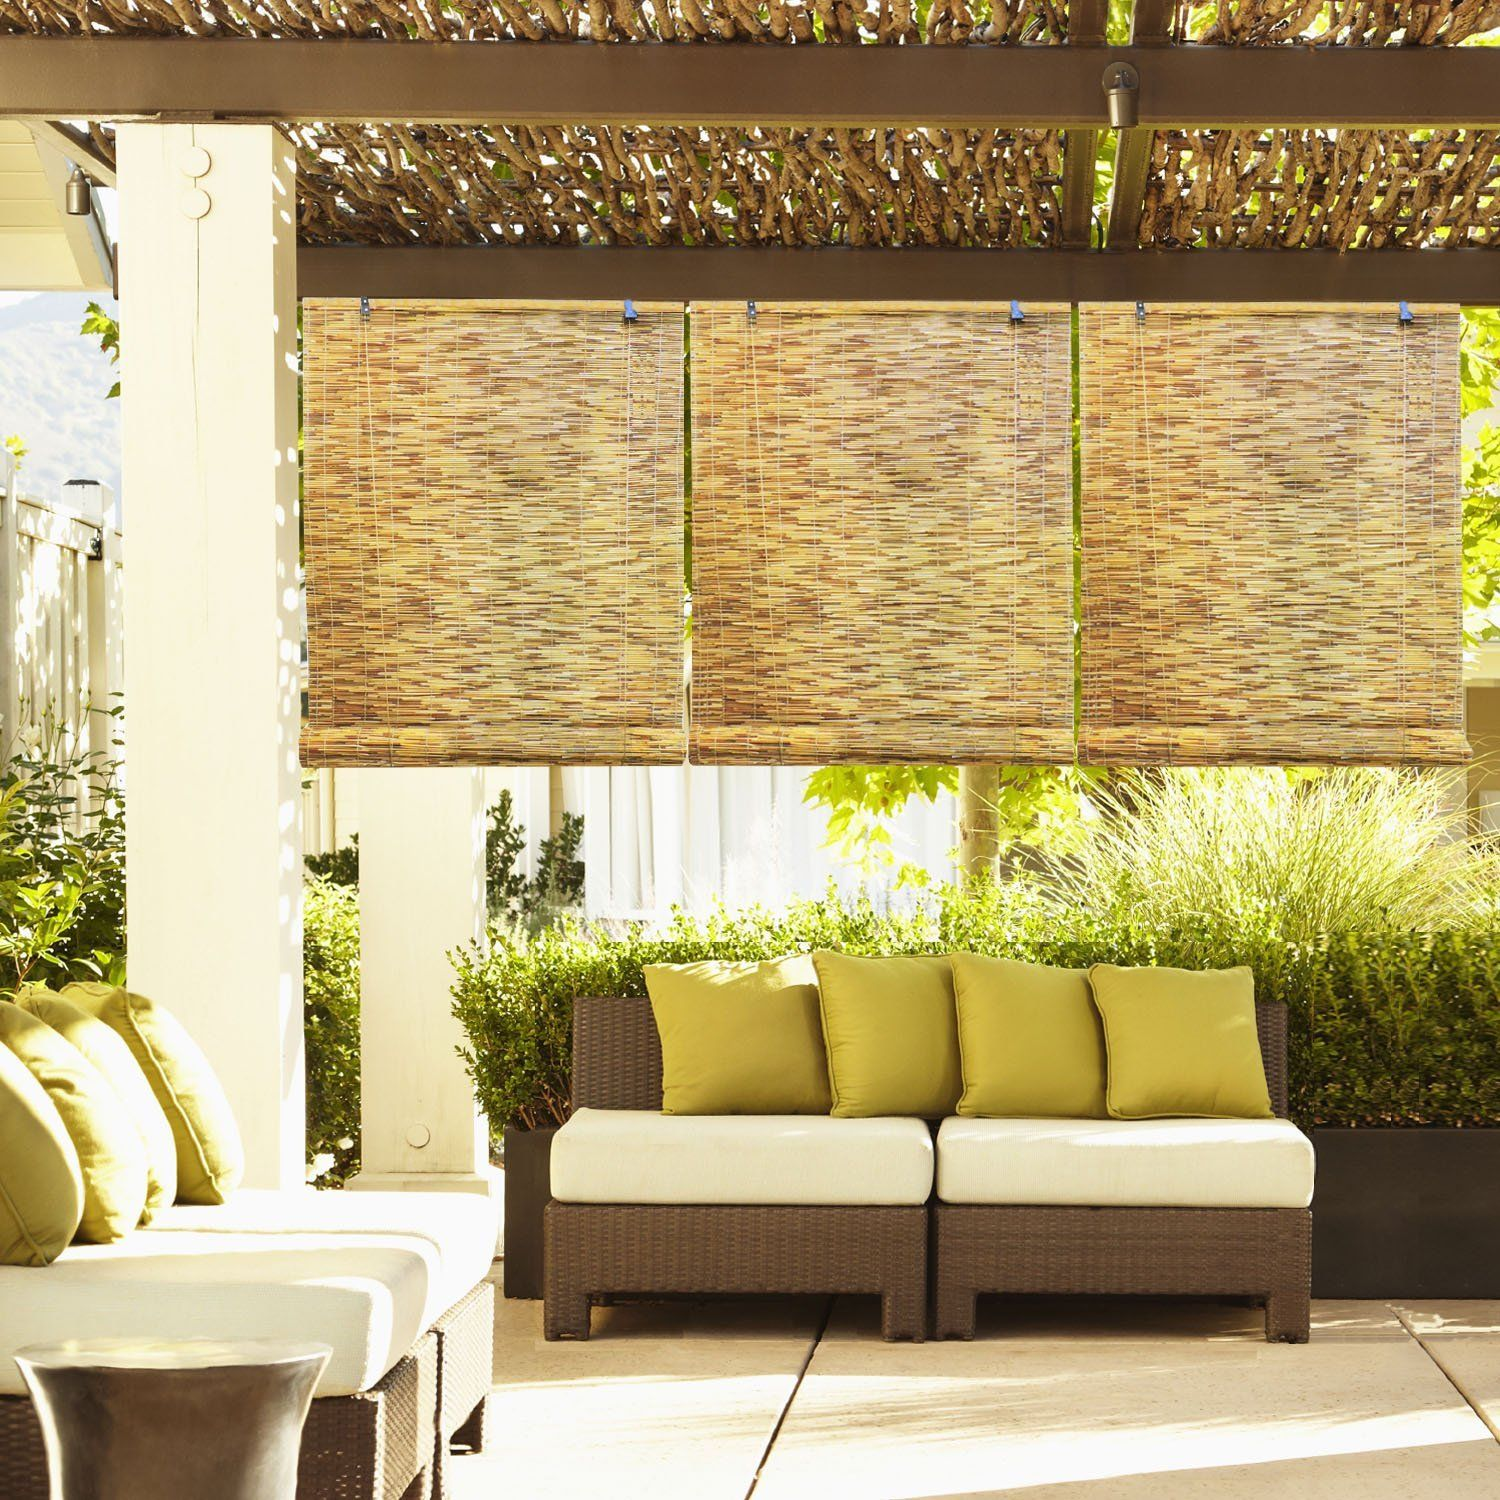 These 10 Outdoor Bamboo Blinds Can Add Value Around Your Patio Reference Shade For Lamp And Window Porch Shades Outdoor Blinds Bamboo Blinds